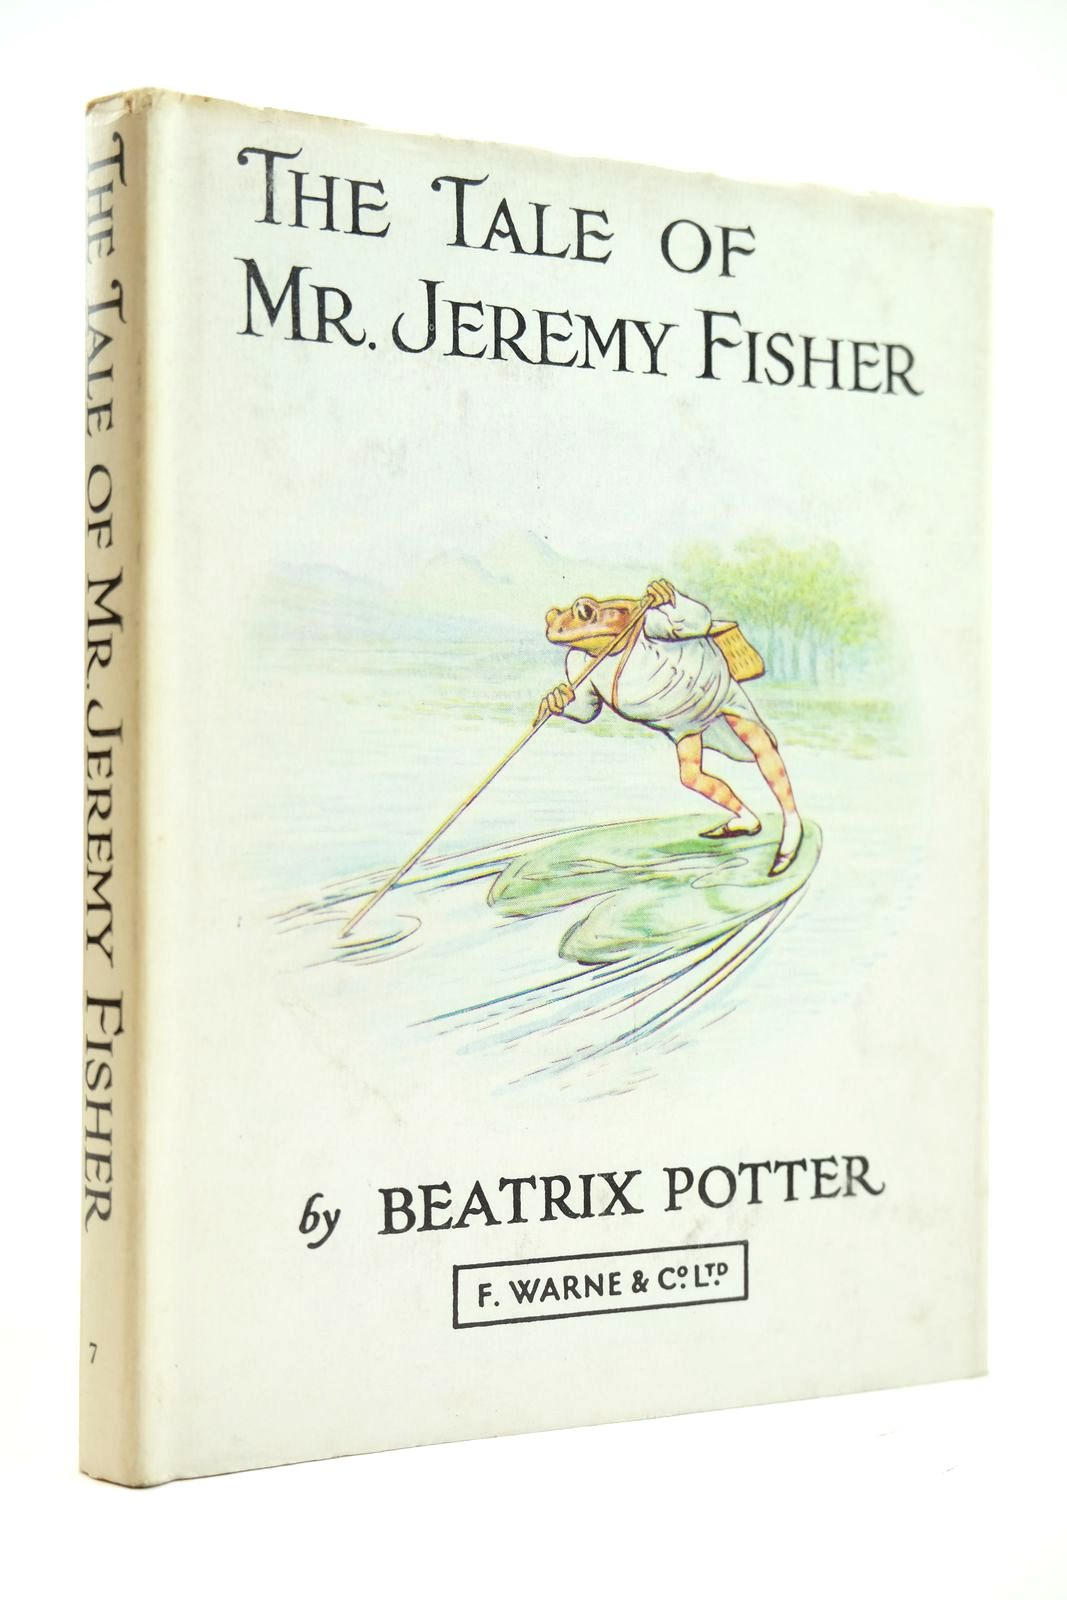 Photo of THE TALE OF MR. JEREMY FISHER written by Potter, Beatrix illustrated by Potter, Beatrix published by Frederick Warne & Co Ltd. (STOCK CODE: 2131896)  for sale by Stella & Rose's Books